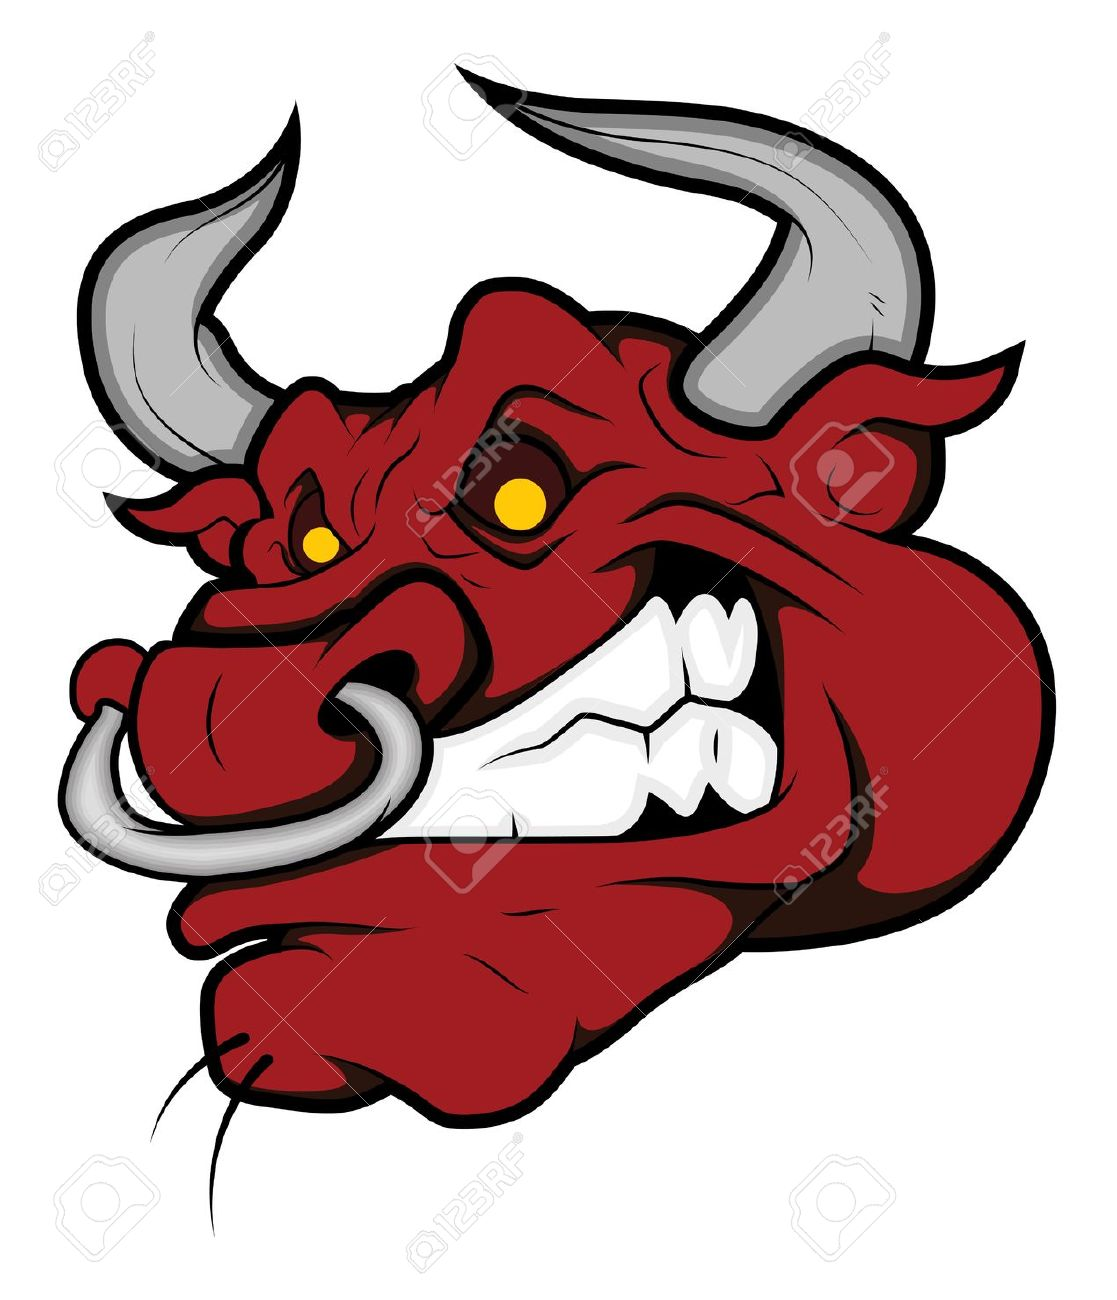 Ox clipart raging bull Pin BB Stock on Team